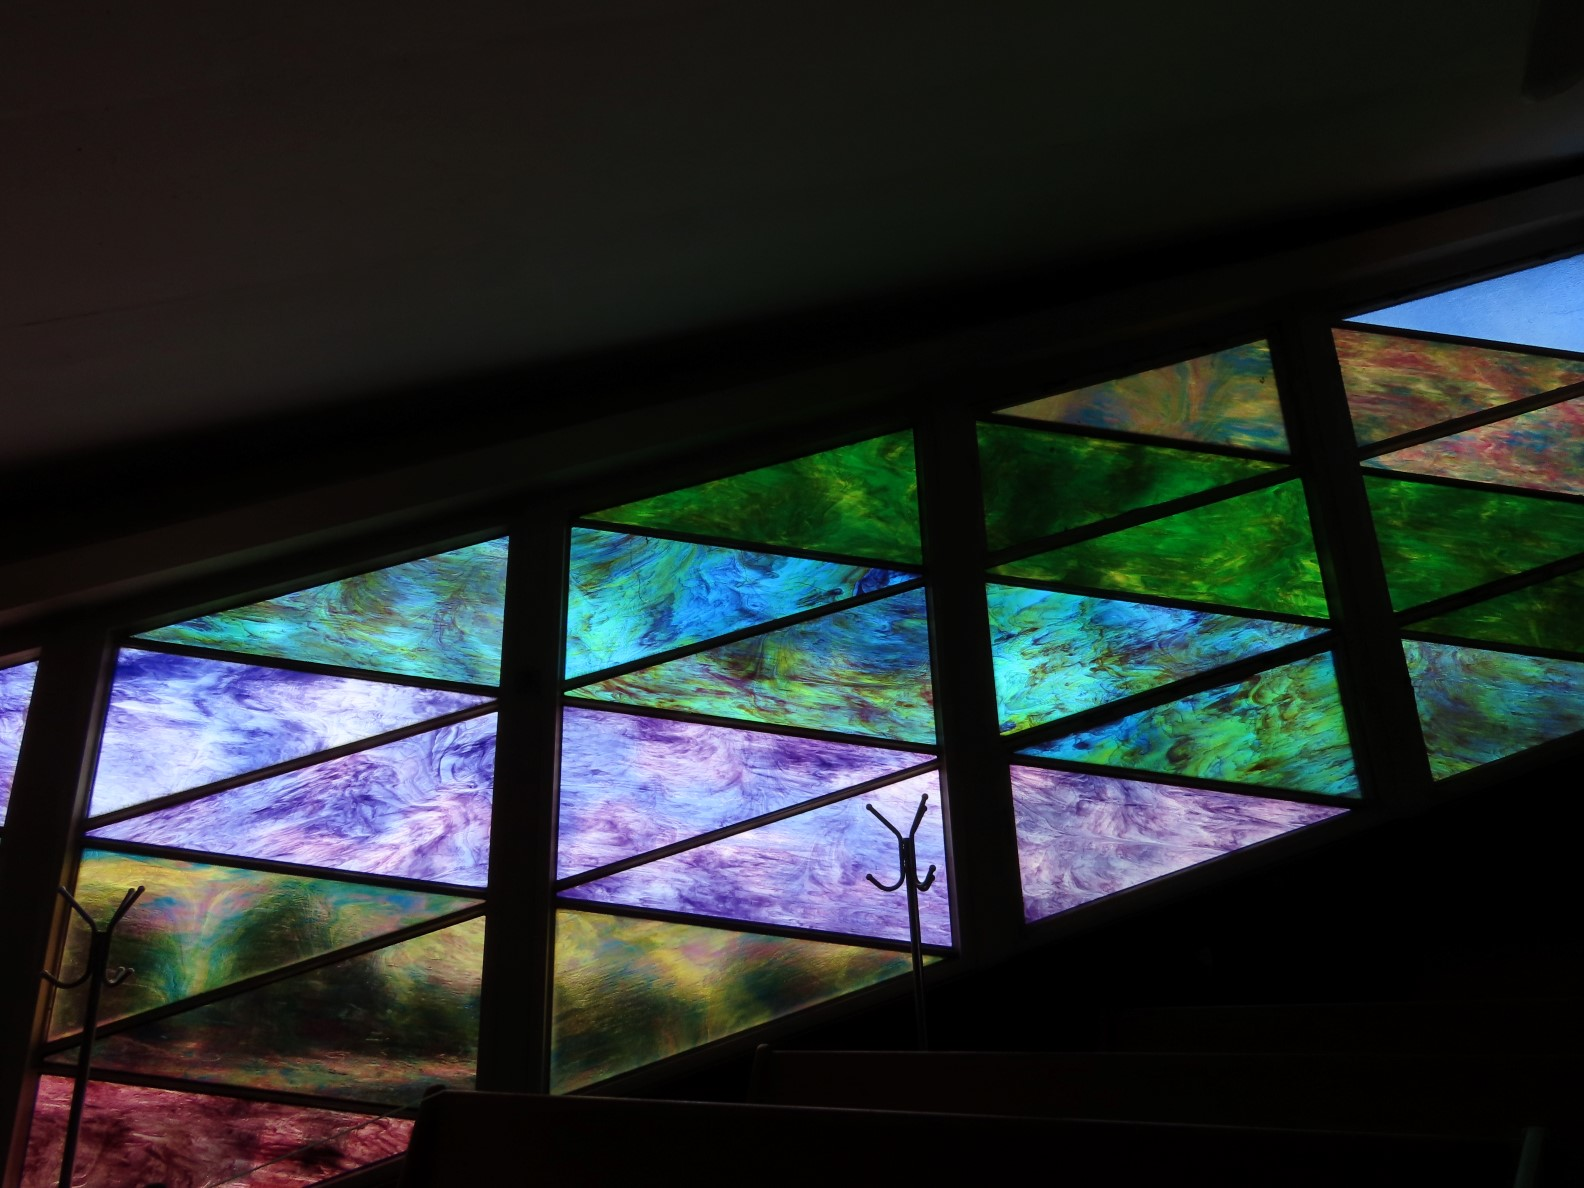 Stained glass windows. Green and purple.